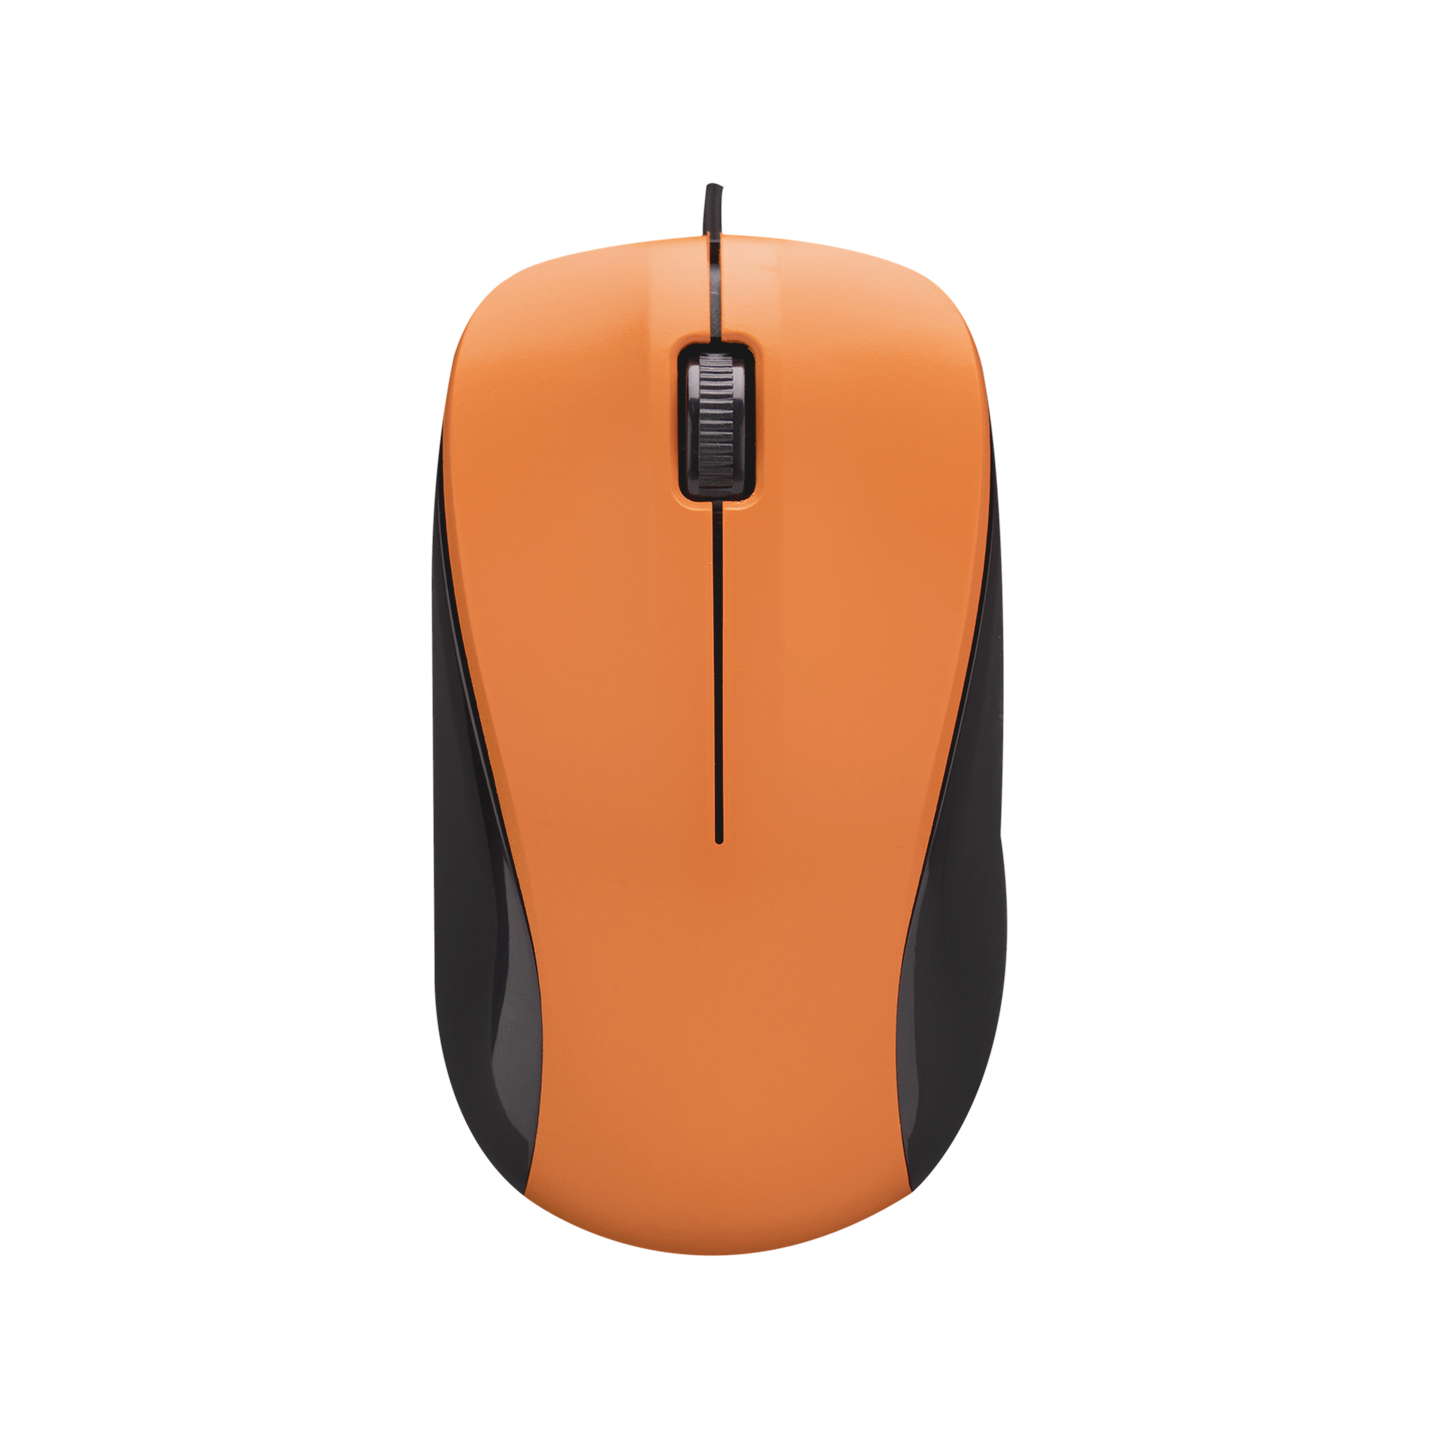 Everest SM-215 Usb Turuncu 1200dpi Optik Mouse